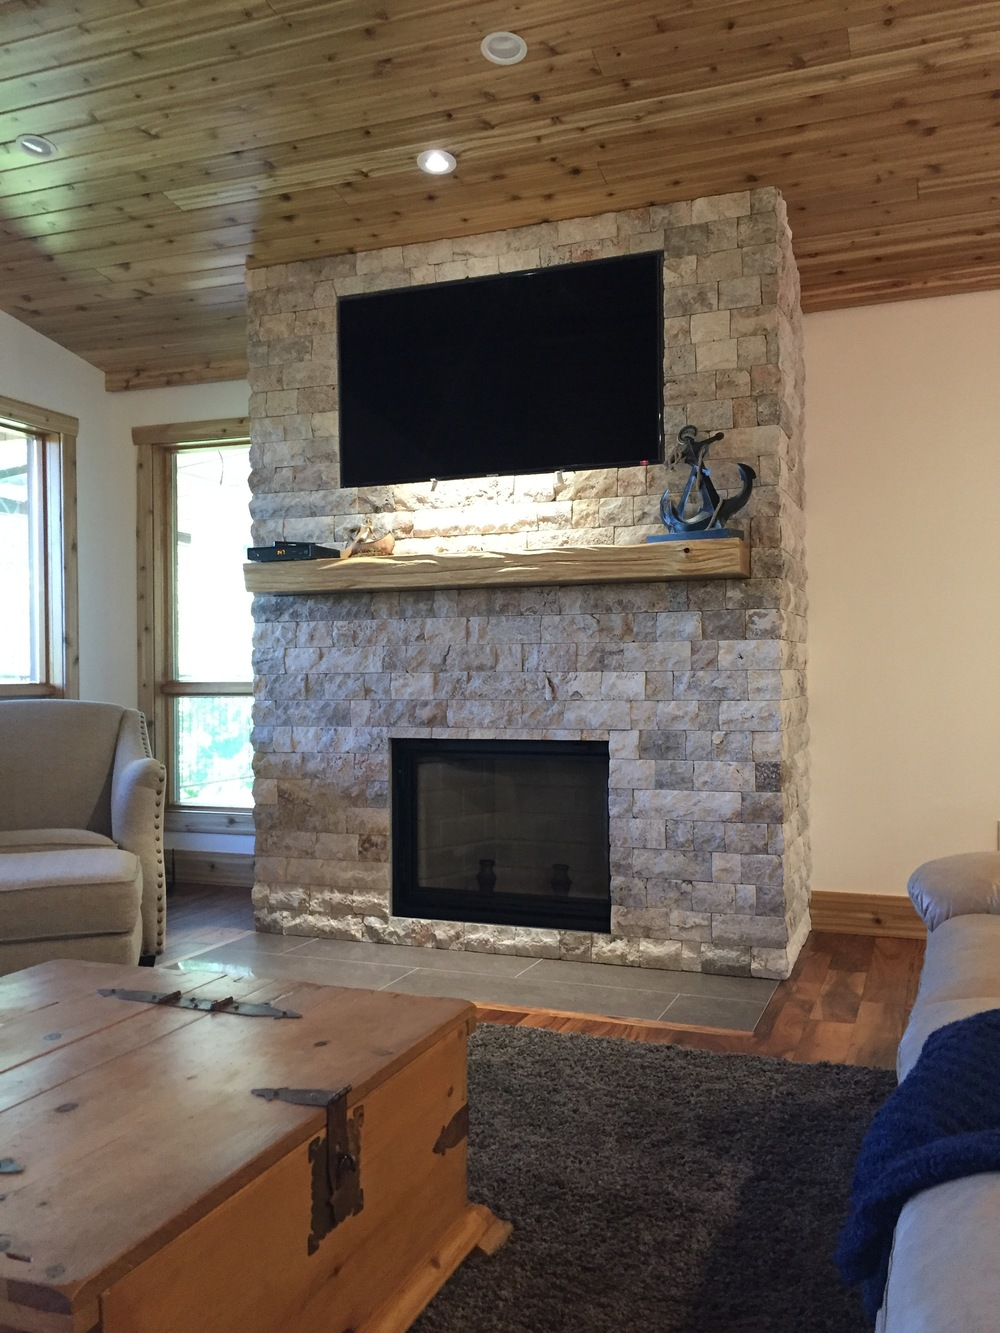 Rustic stone fireplace with live edge birch mantel and porcelain hearth.